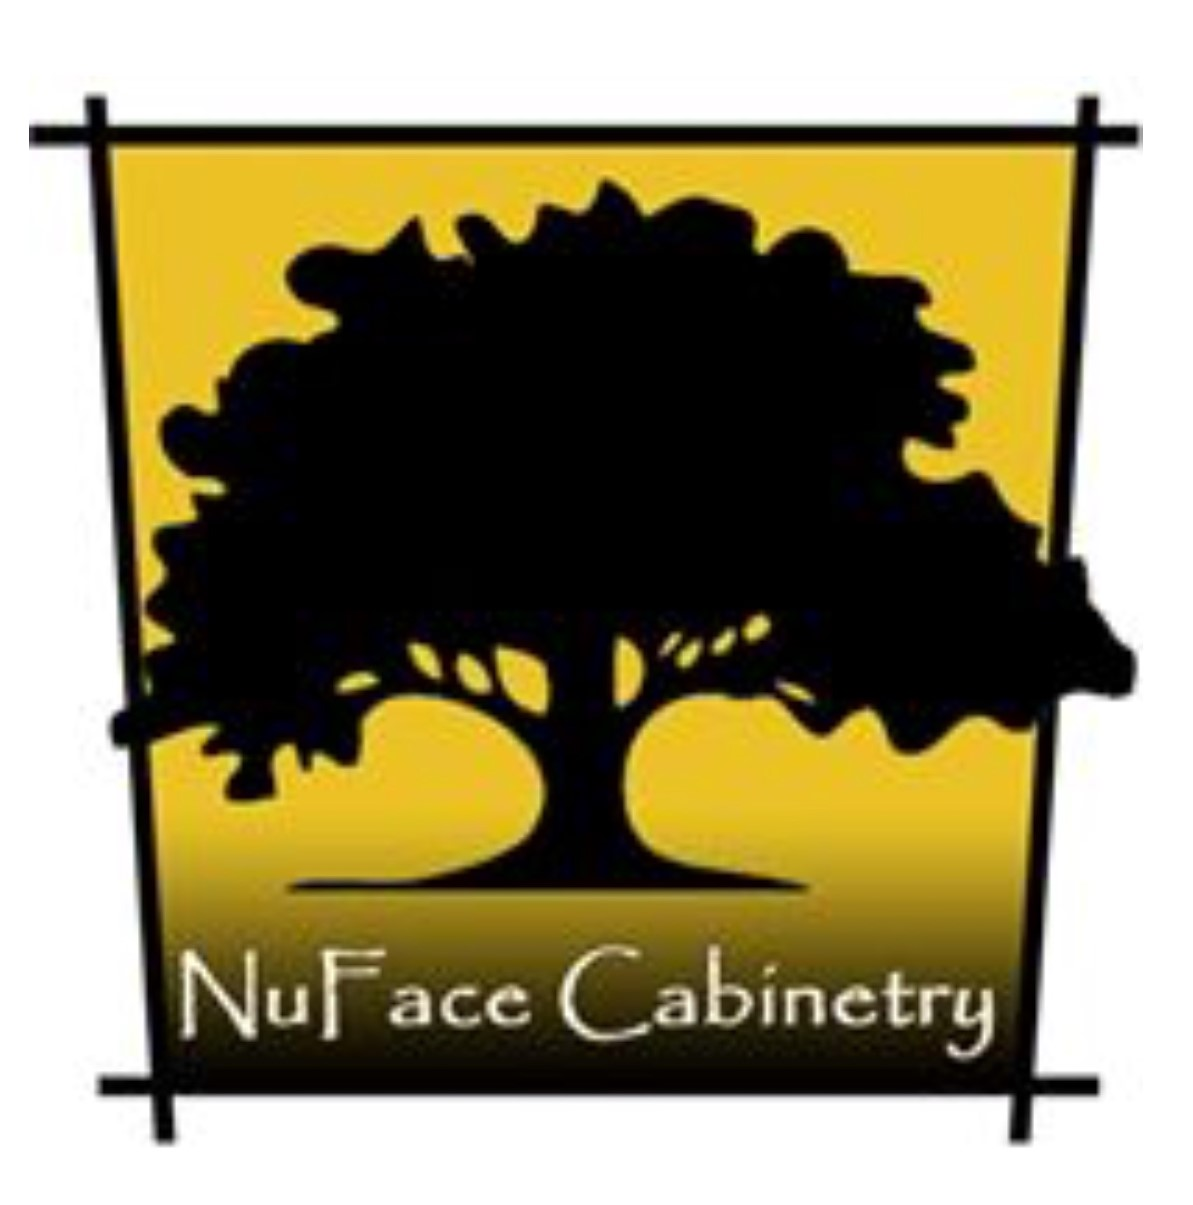 NuFace Cabinetry